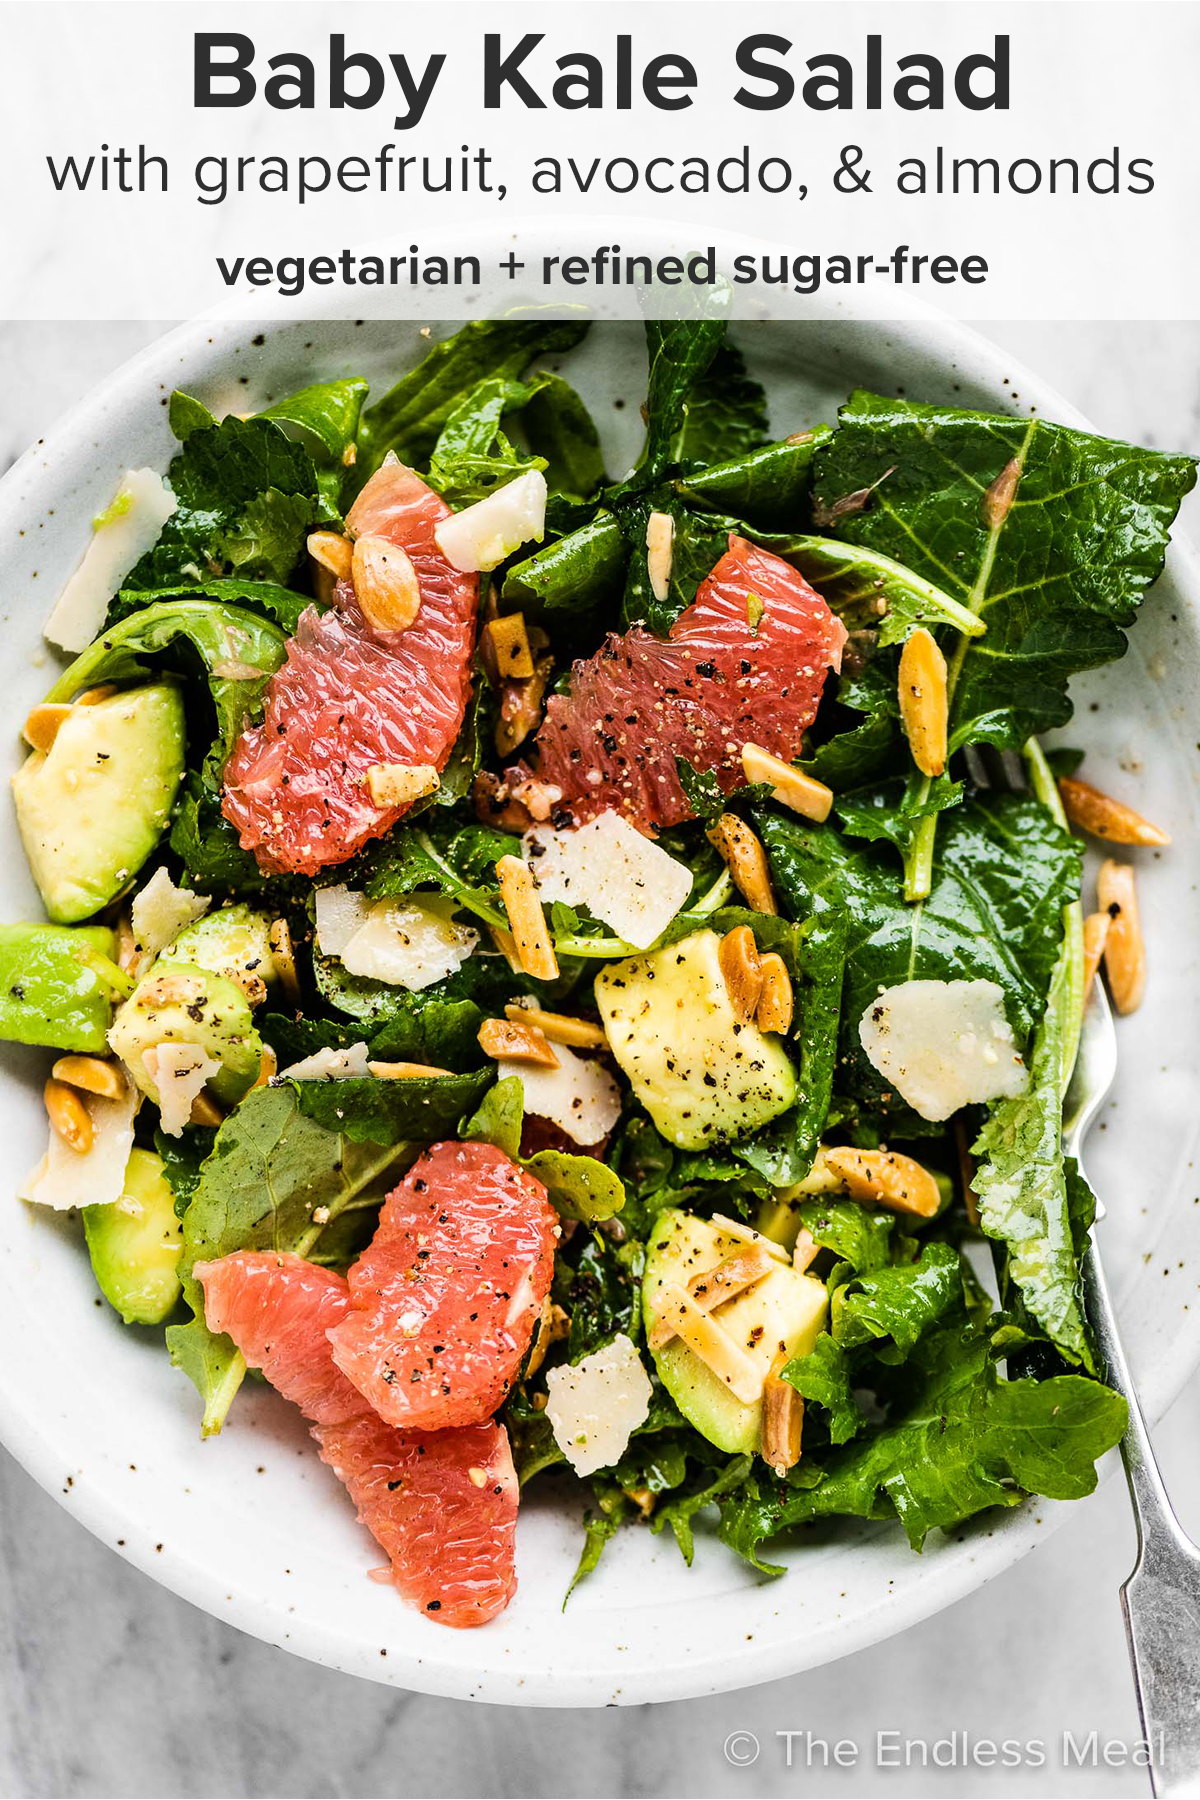 Baby kale salad on a plate with grapefruit, avocados, and almonds and the recipe title on top of the picture.